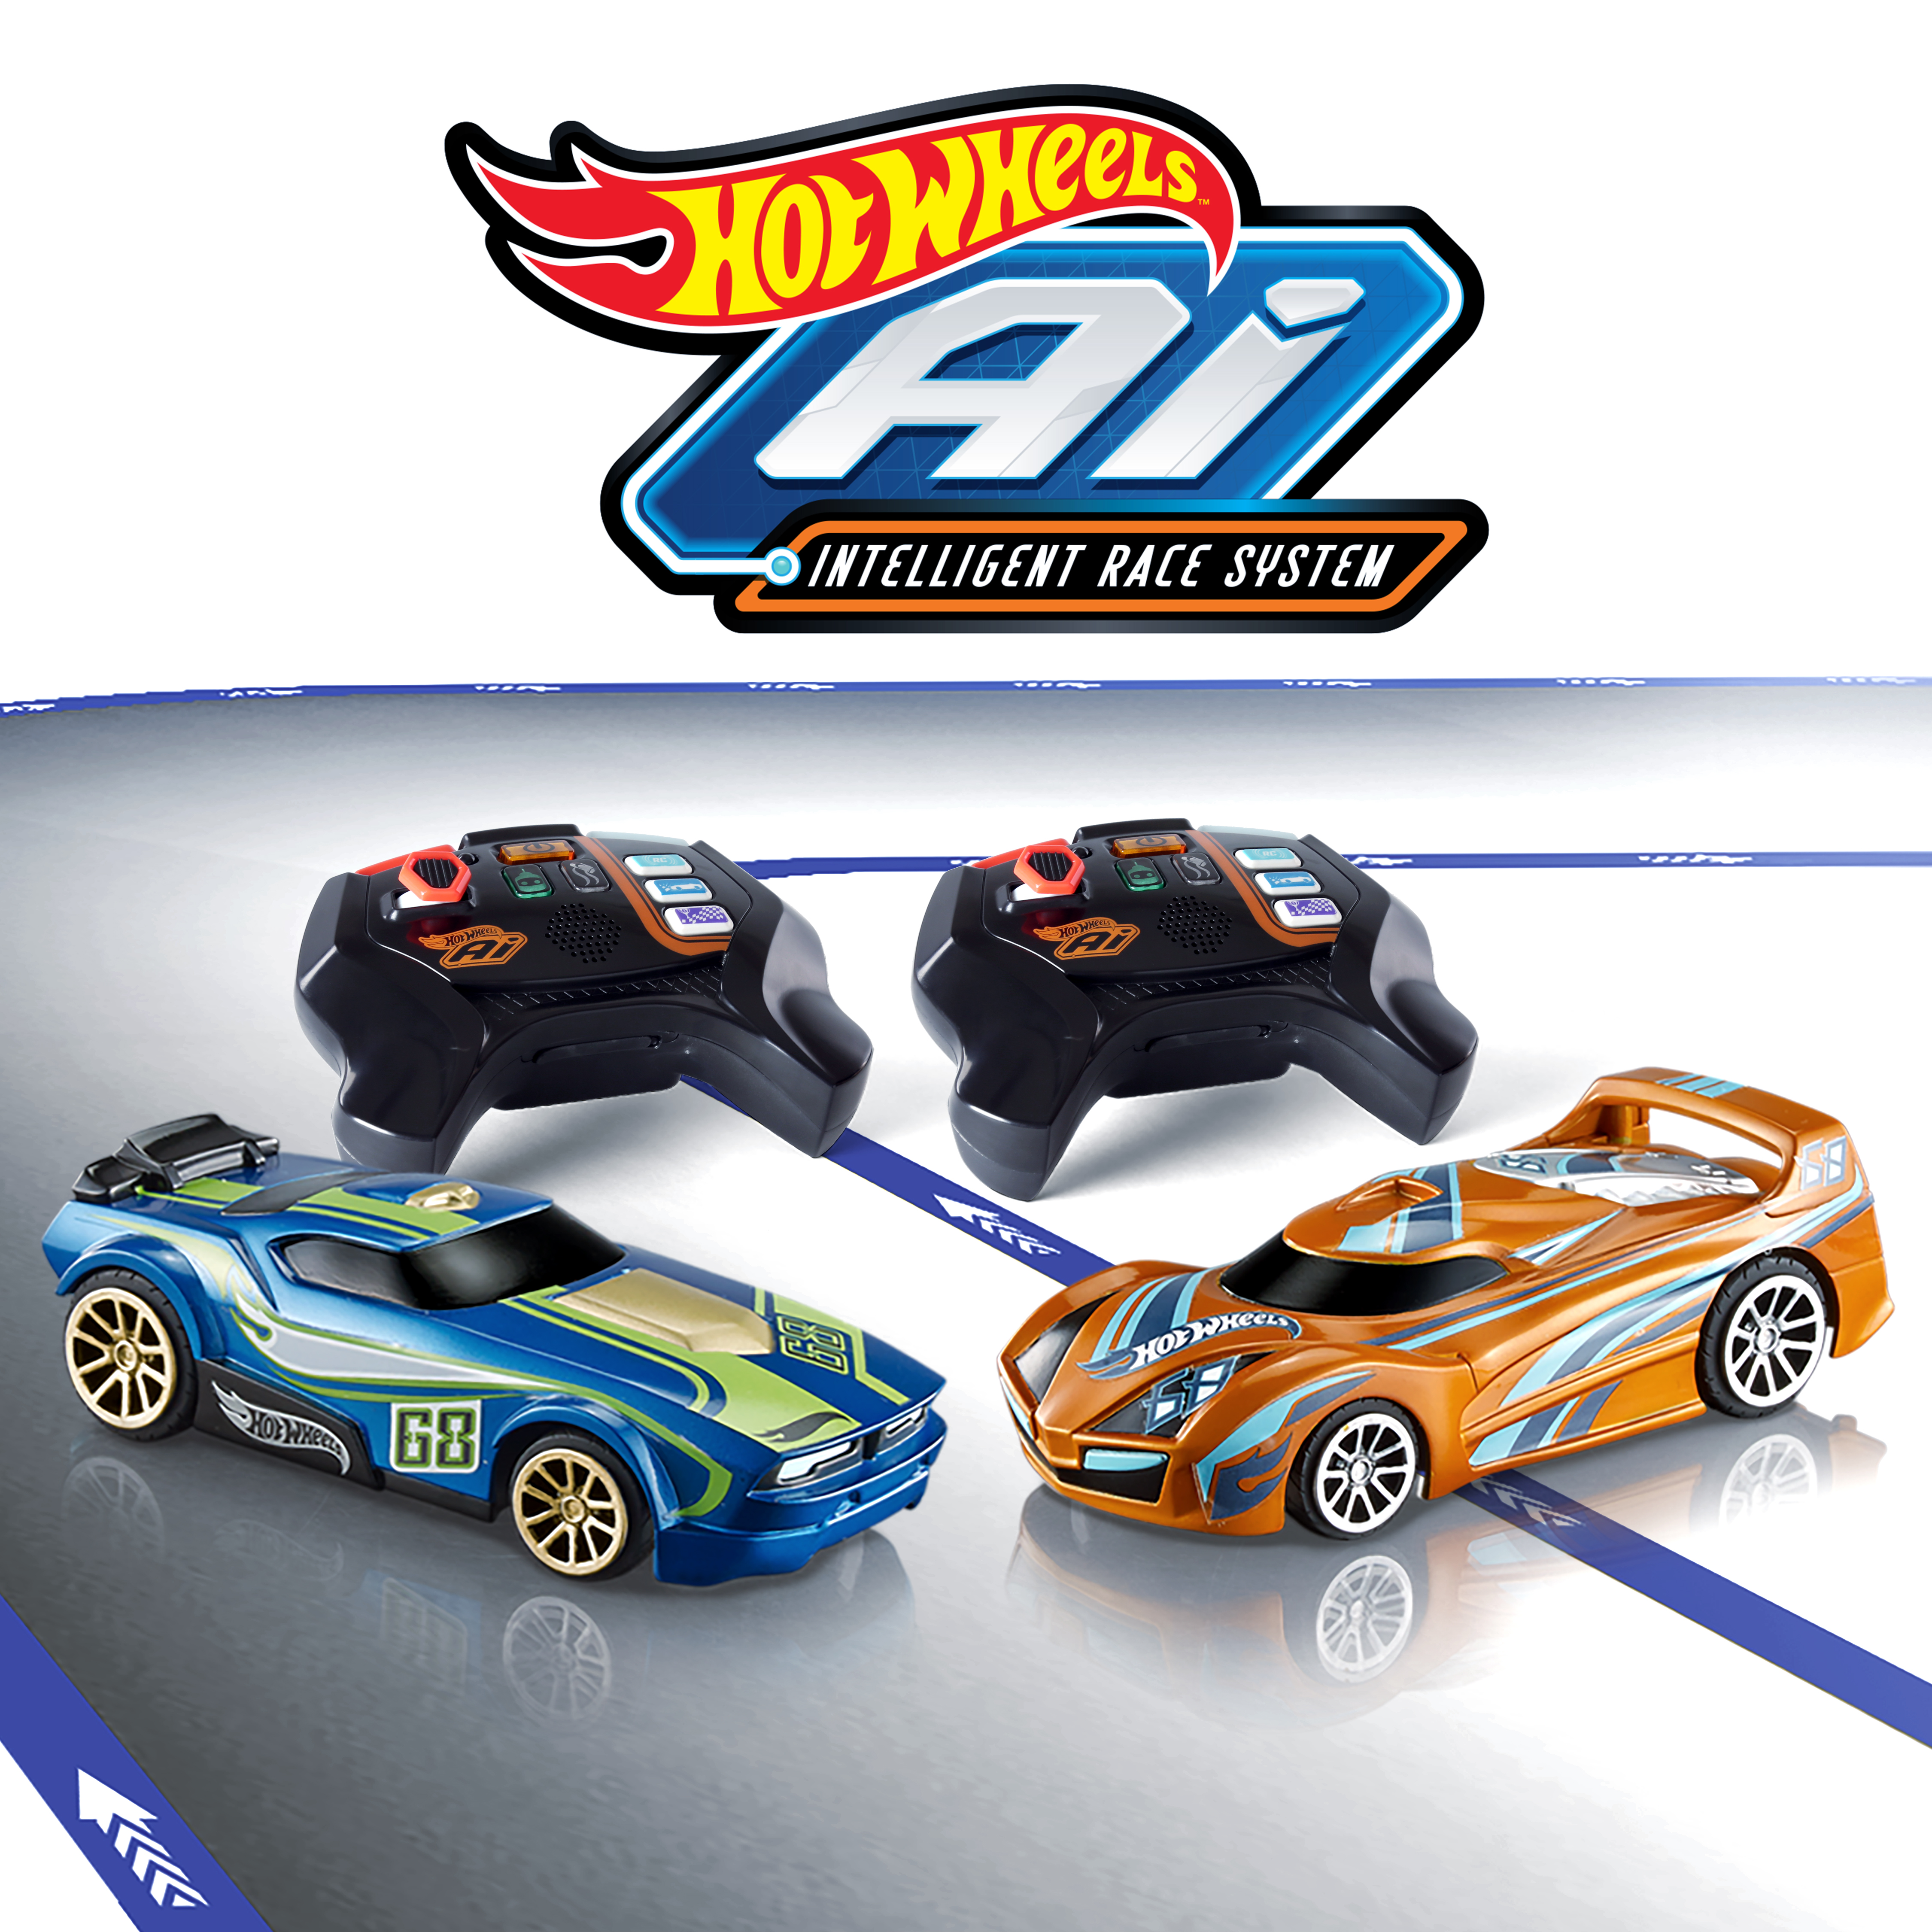 Hot Wheels clipart f1 racing car #13